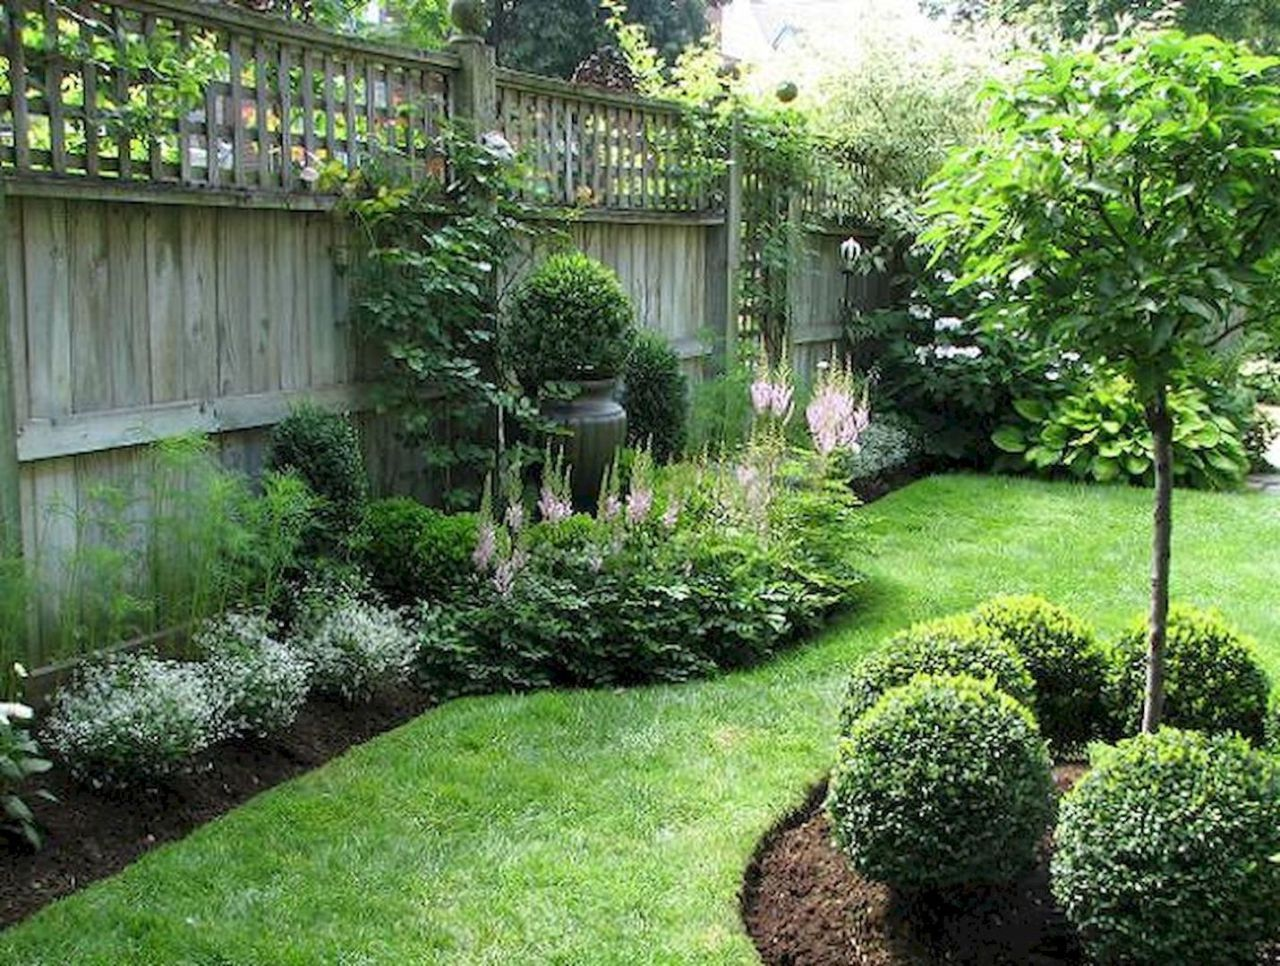 Great Ideas For Backyard Landscaping On A Budget 04 Decomagz Privacy Fence Landscaping Backyard Landscaping Designs Backyard Fences Backyard fence landscaping ideas